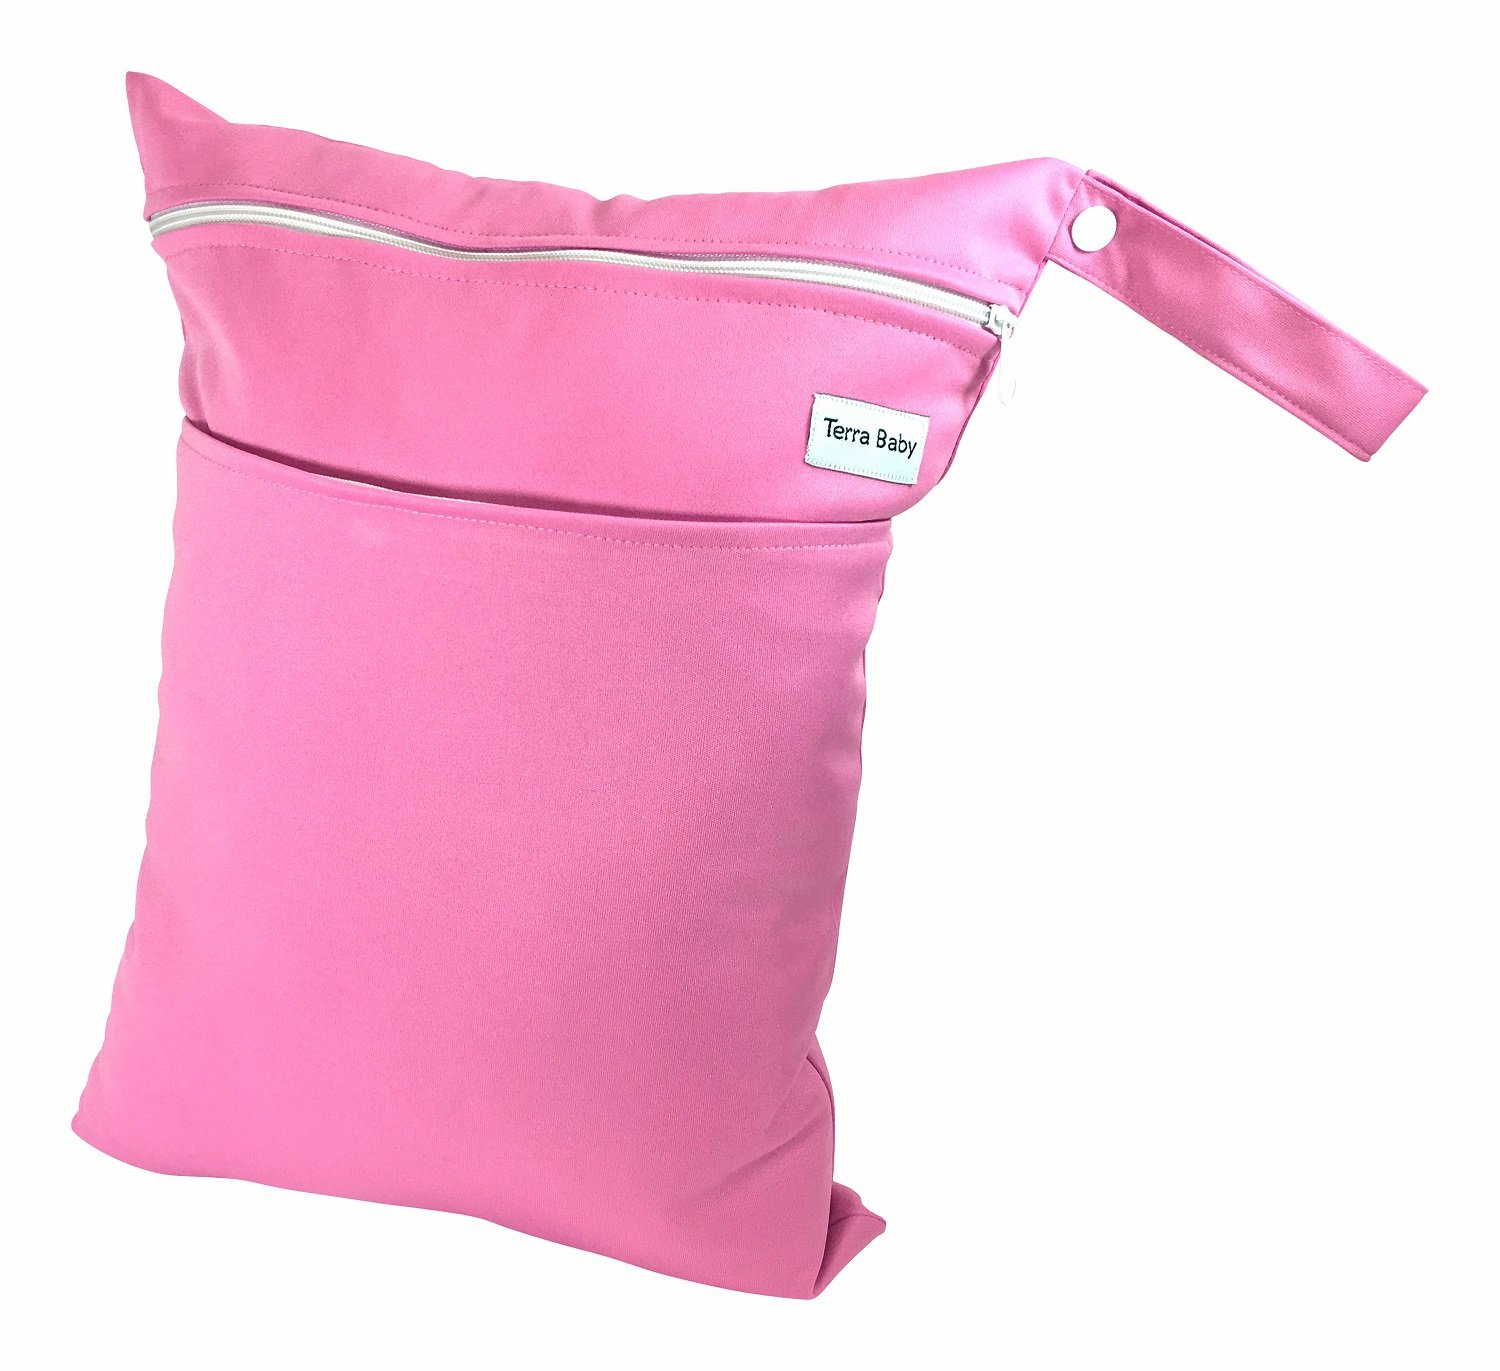 Baby Wet and Dry Bag for Travel Diapers, Burp Cloth and more - Reusable and Waterproof (Hot Pink) by Terry Baby